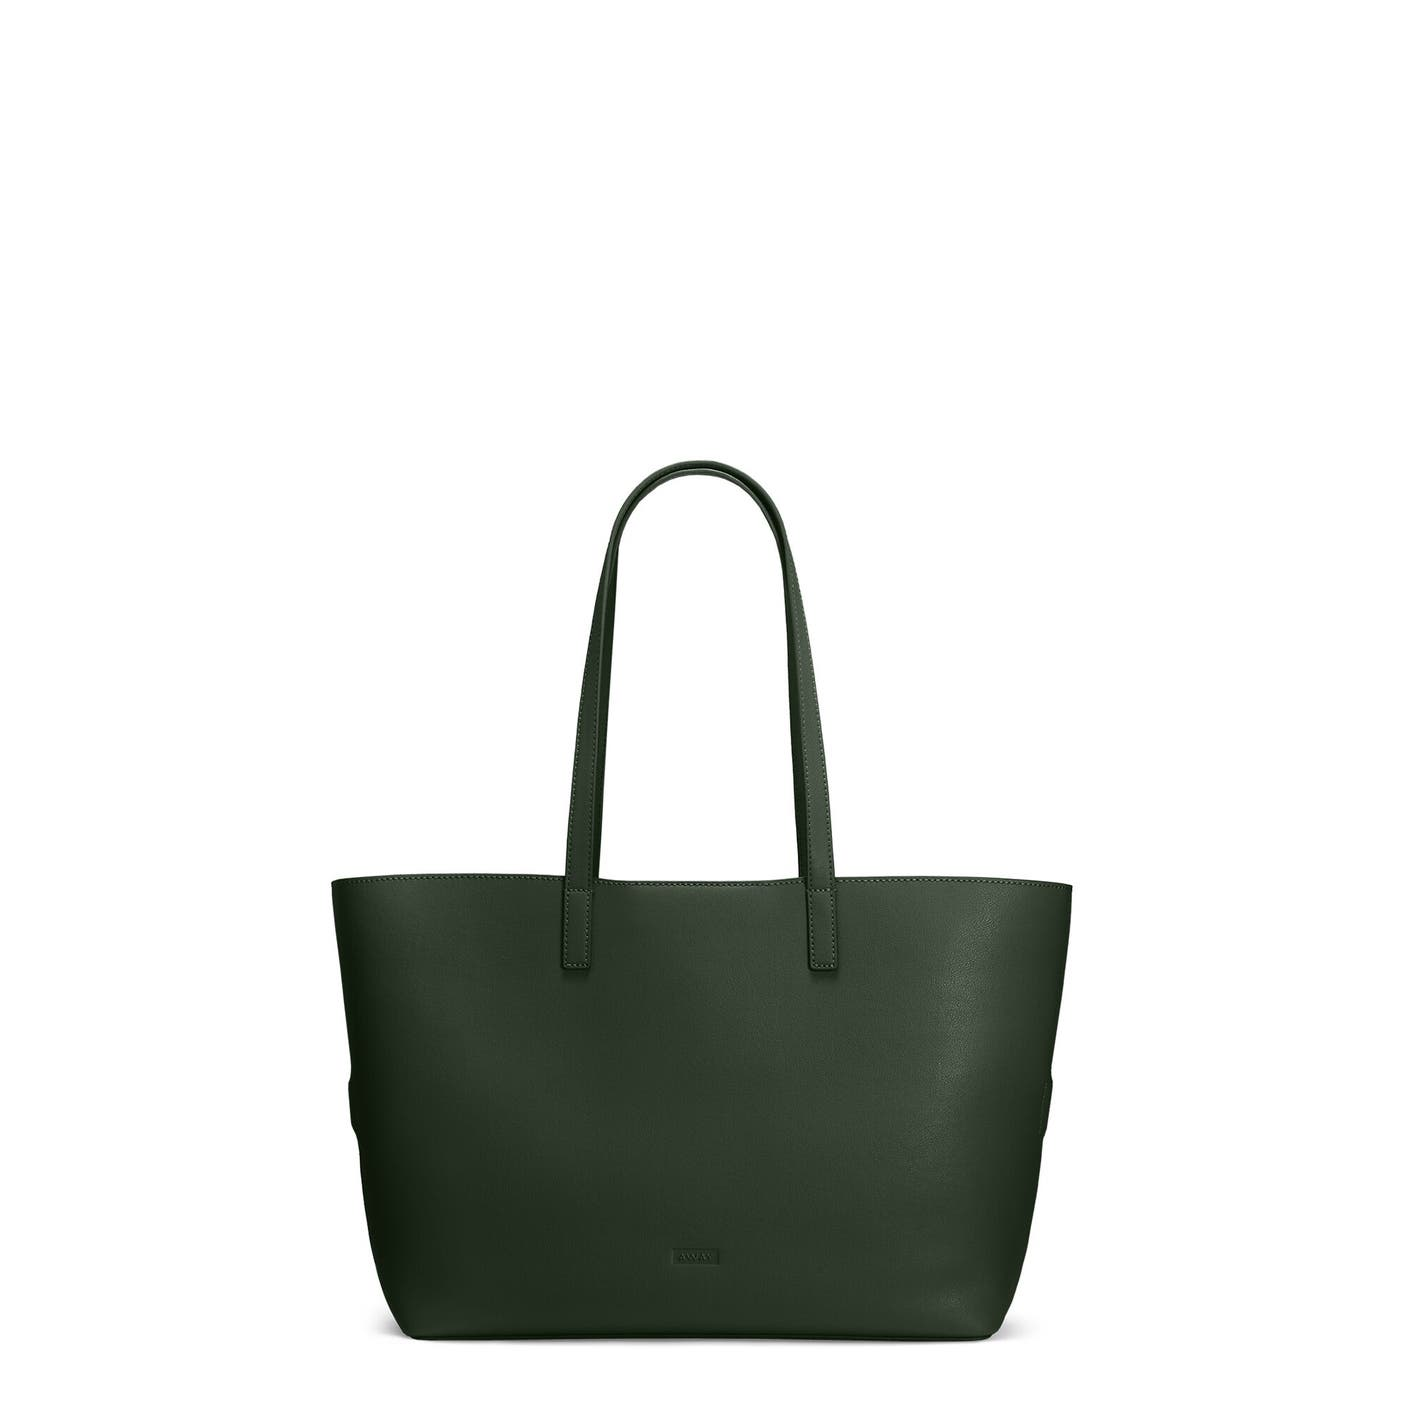 The Latitude Tote